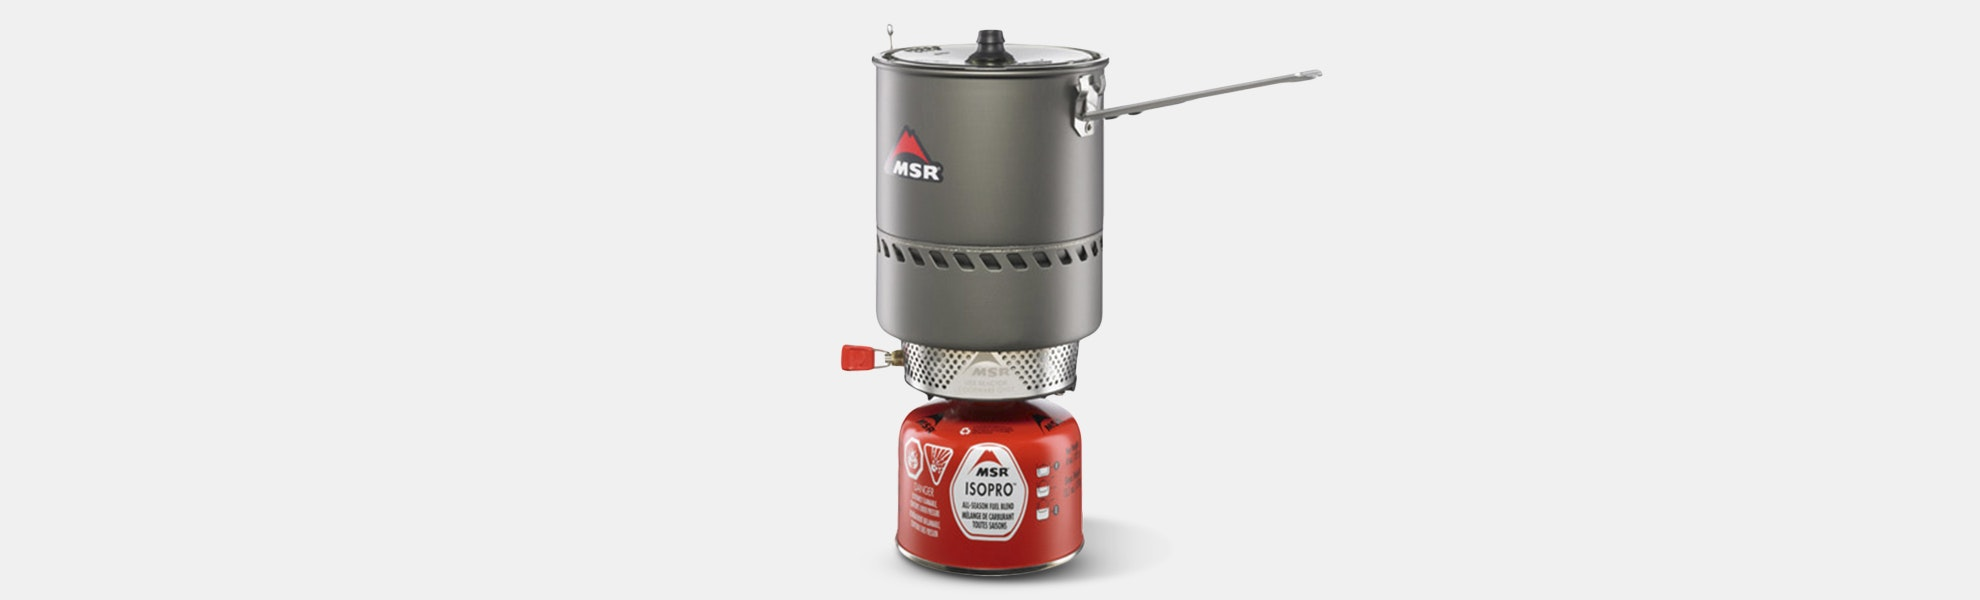 MSR Reactor Stove Systems or Cookware